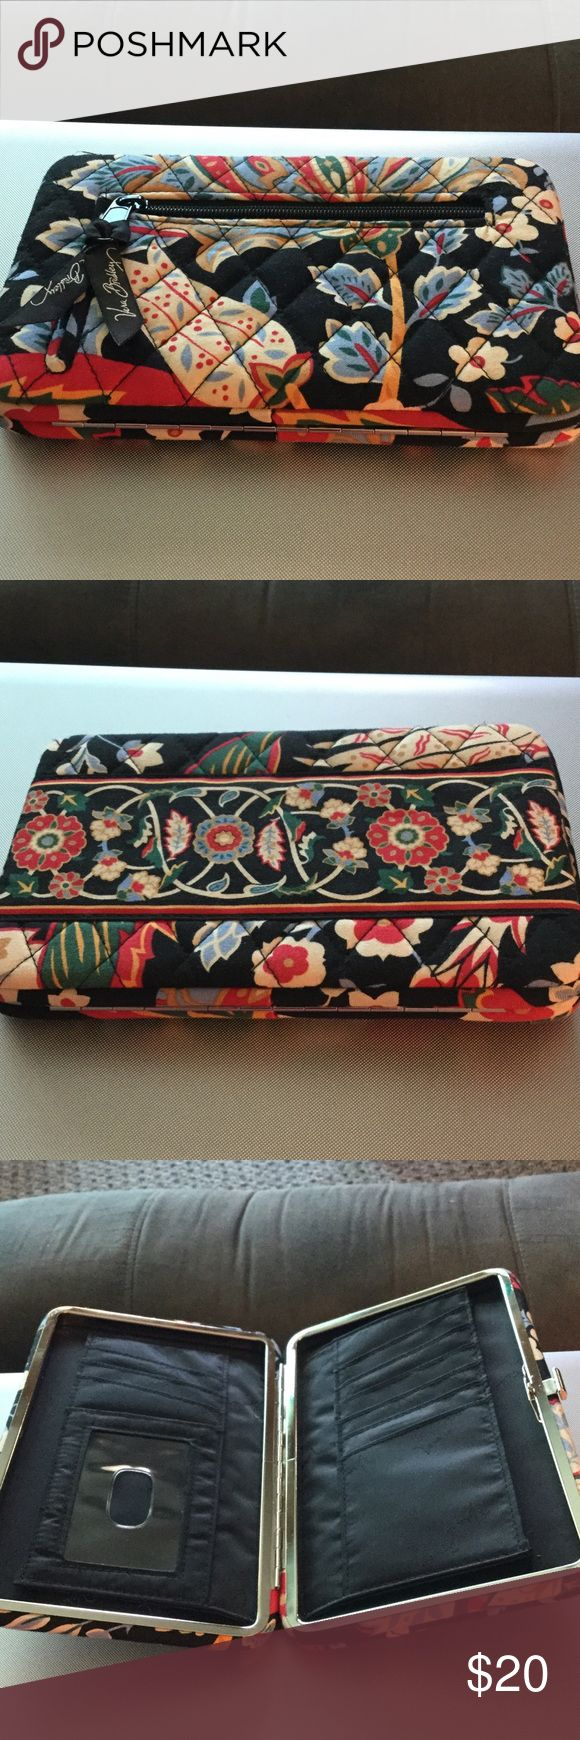 PRICE REDUCED!!Vera Bradley Clasp  Skinny Wallet Nice clean wallet, great condition. Lots of card slots, zippered change holder outside. Red, blue cream floral. Vera Bradley Bags Wallets